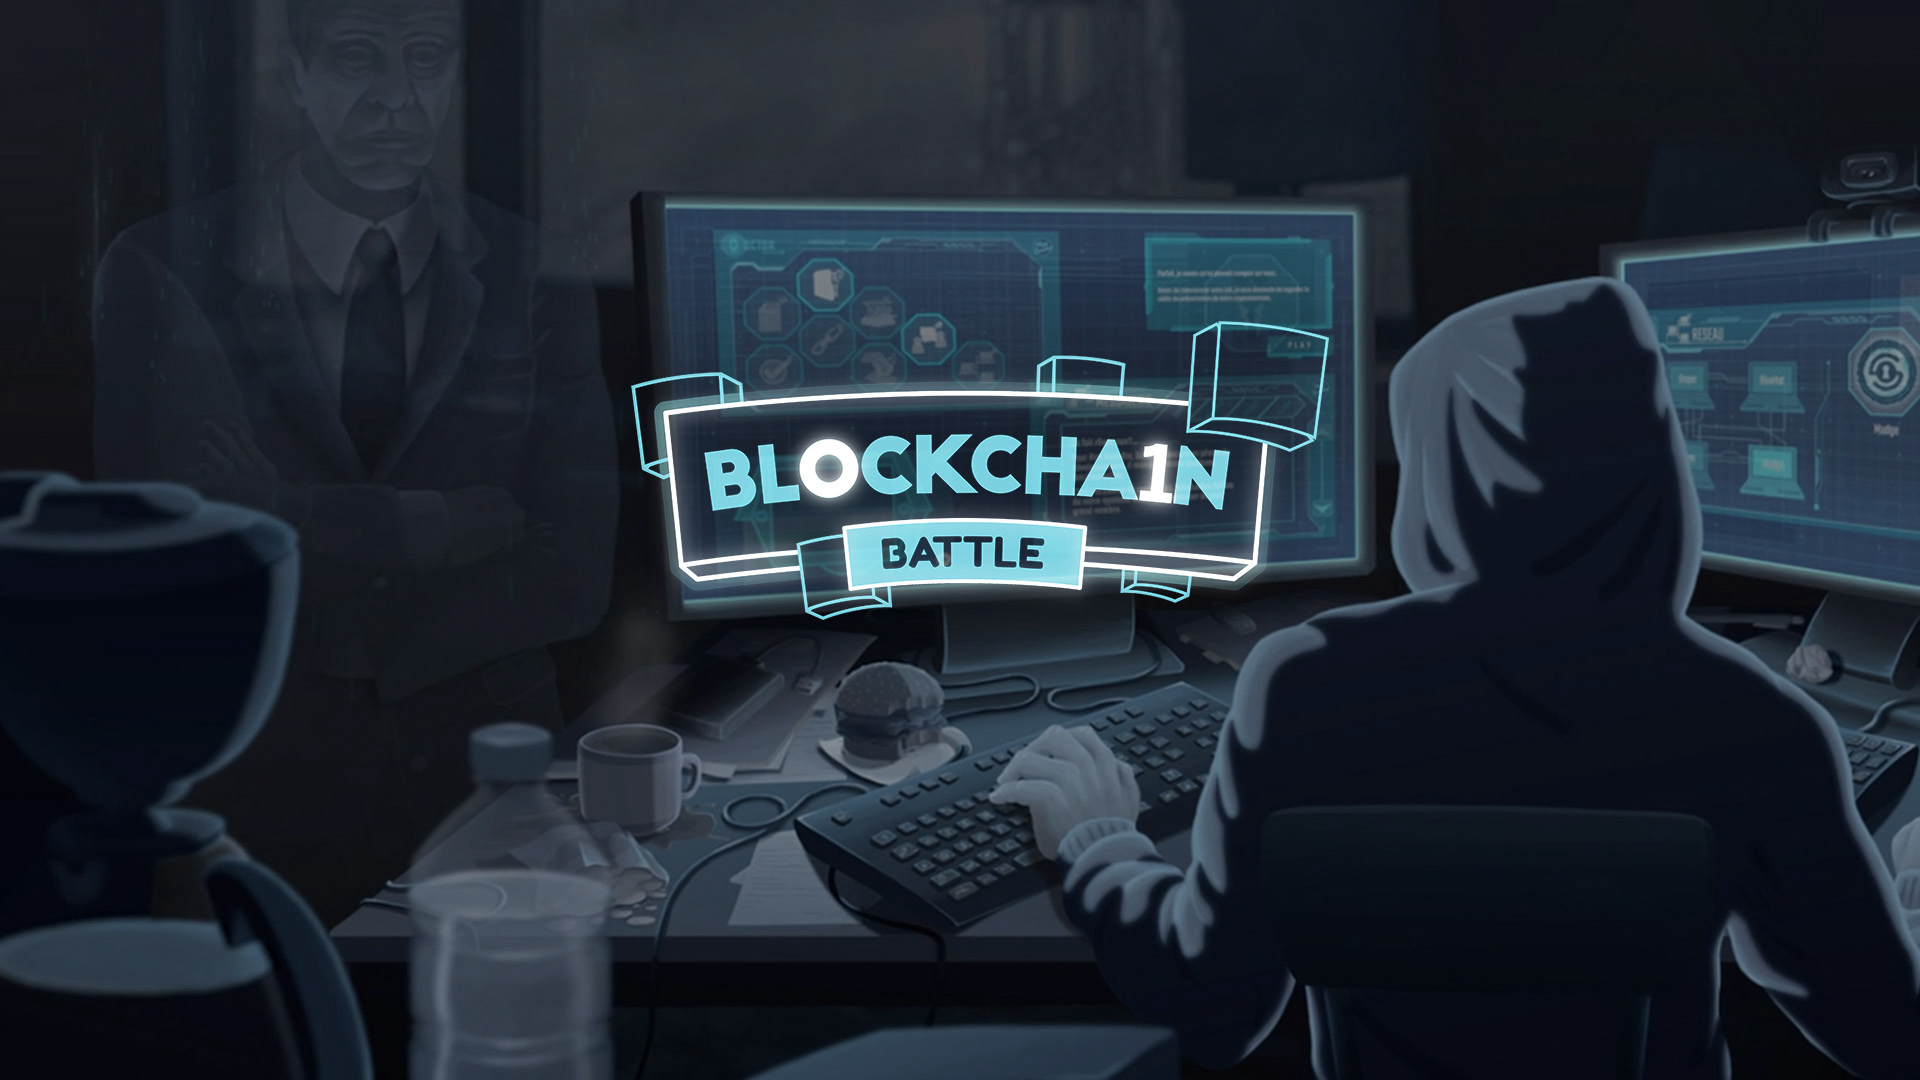 Blockchain Battle